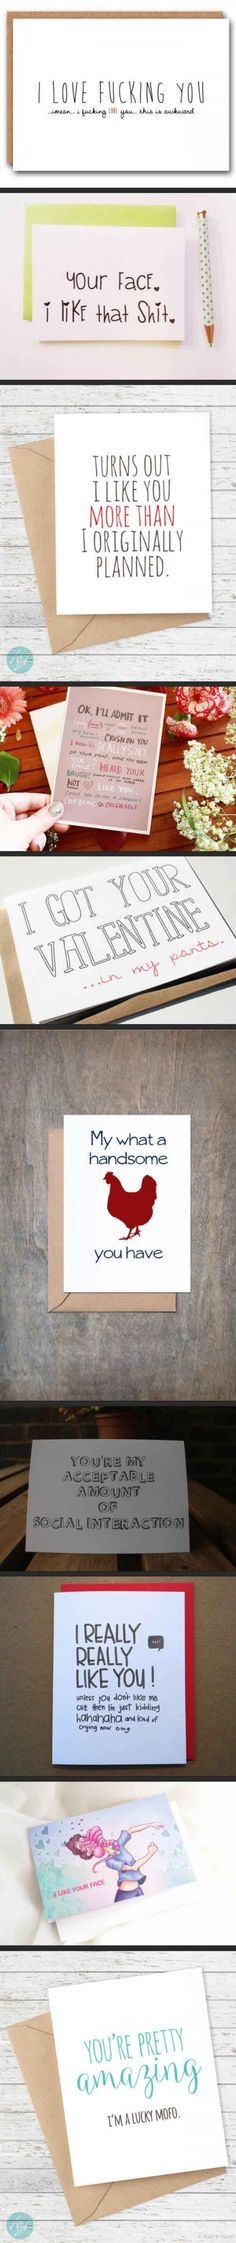 Awkward, but awesome greeting cards for your significant other.